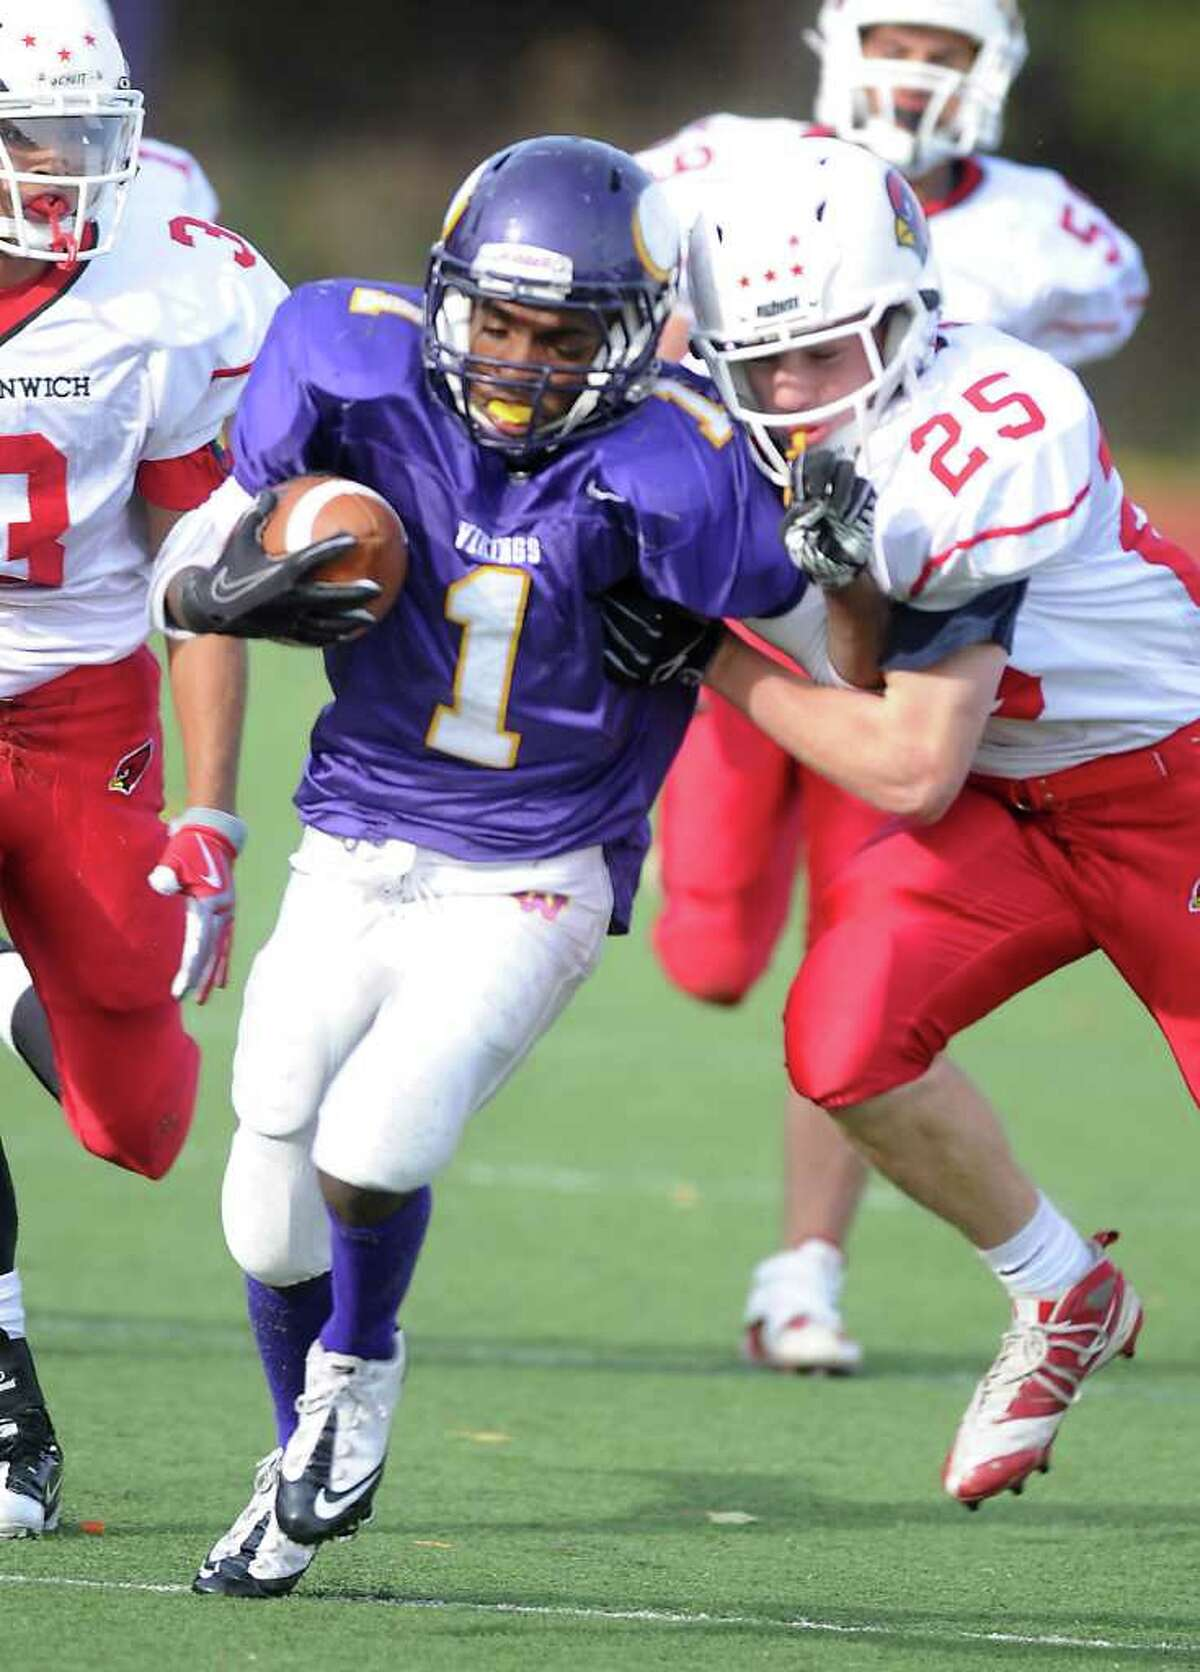 Westhill High School's Akai Jackson os stopped by Greenwich High School's Ryan Kelly in football action in Stamford, Conn. on Saturday October 30, 2010.